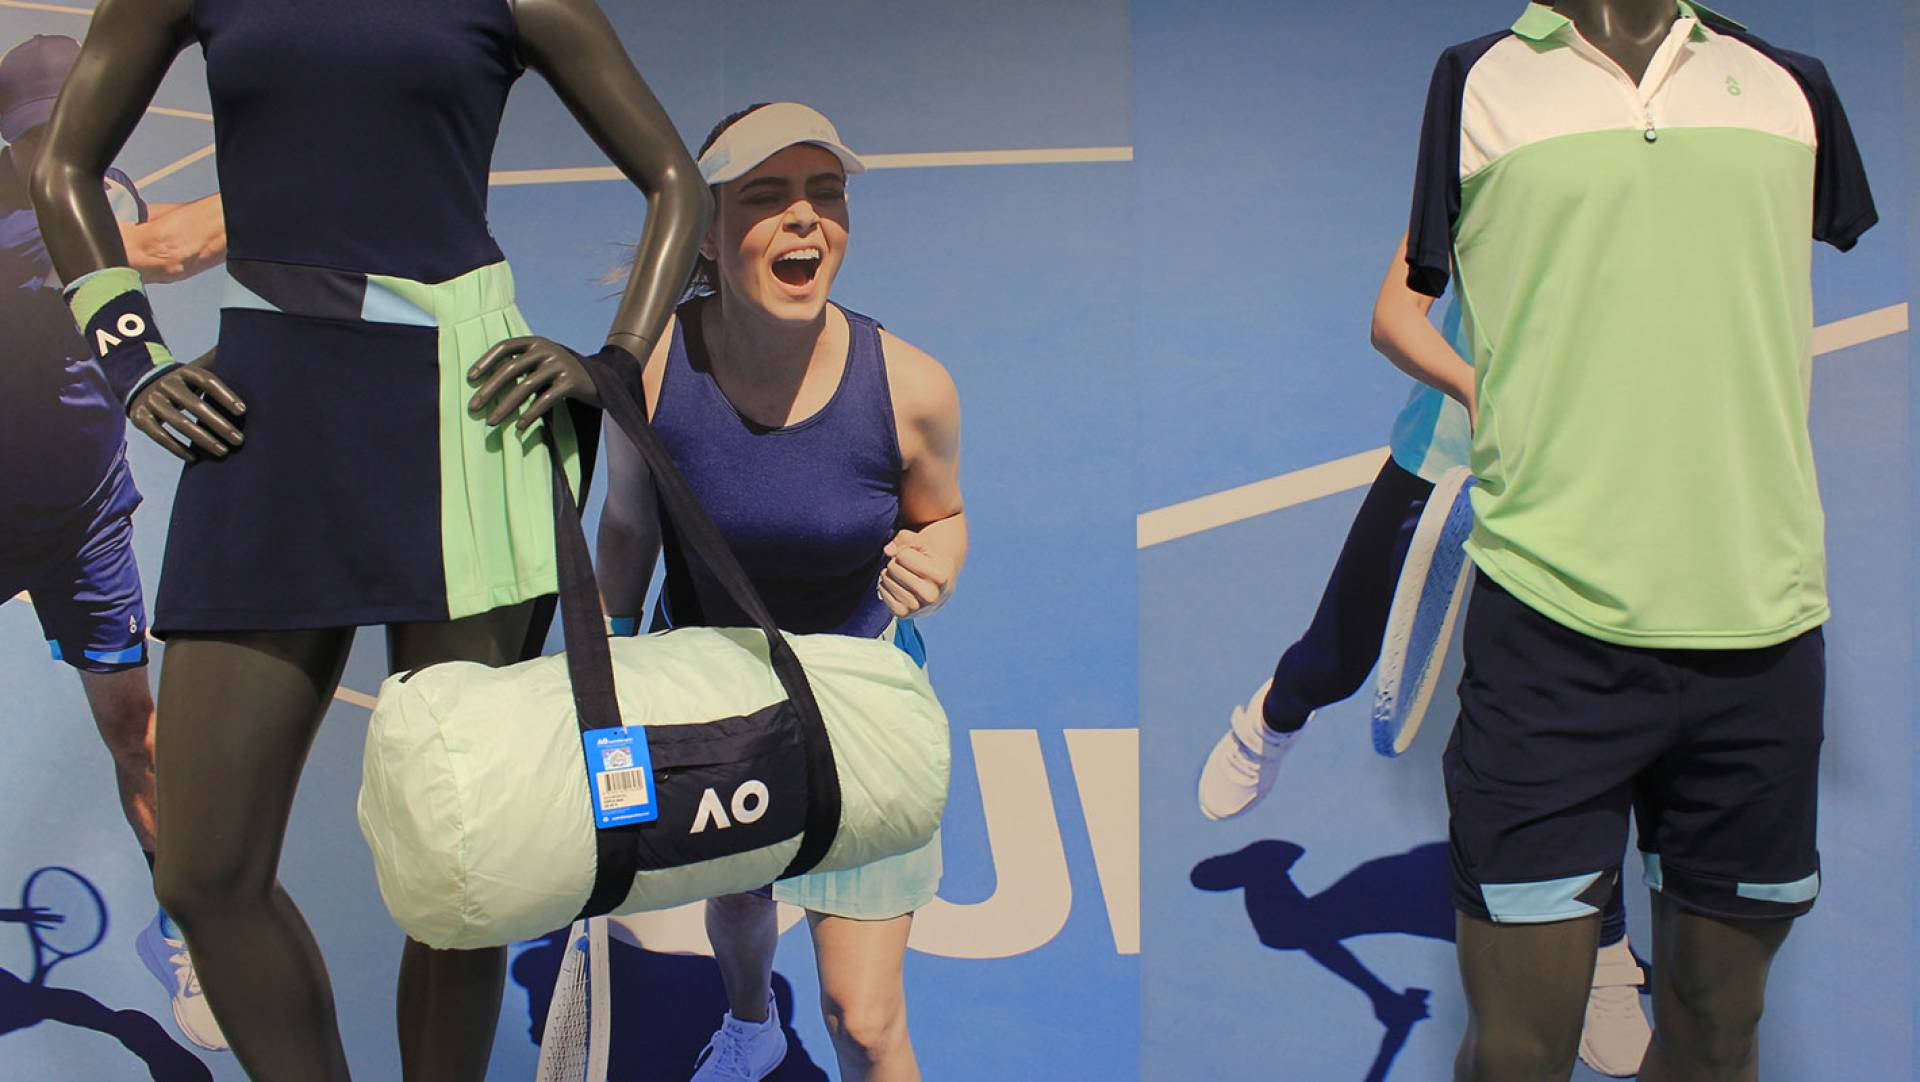 Australian Open 2020-Fashion Range Images by Studio Equator